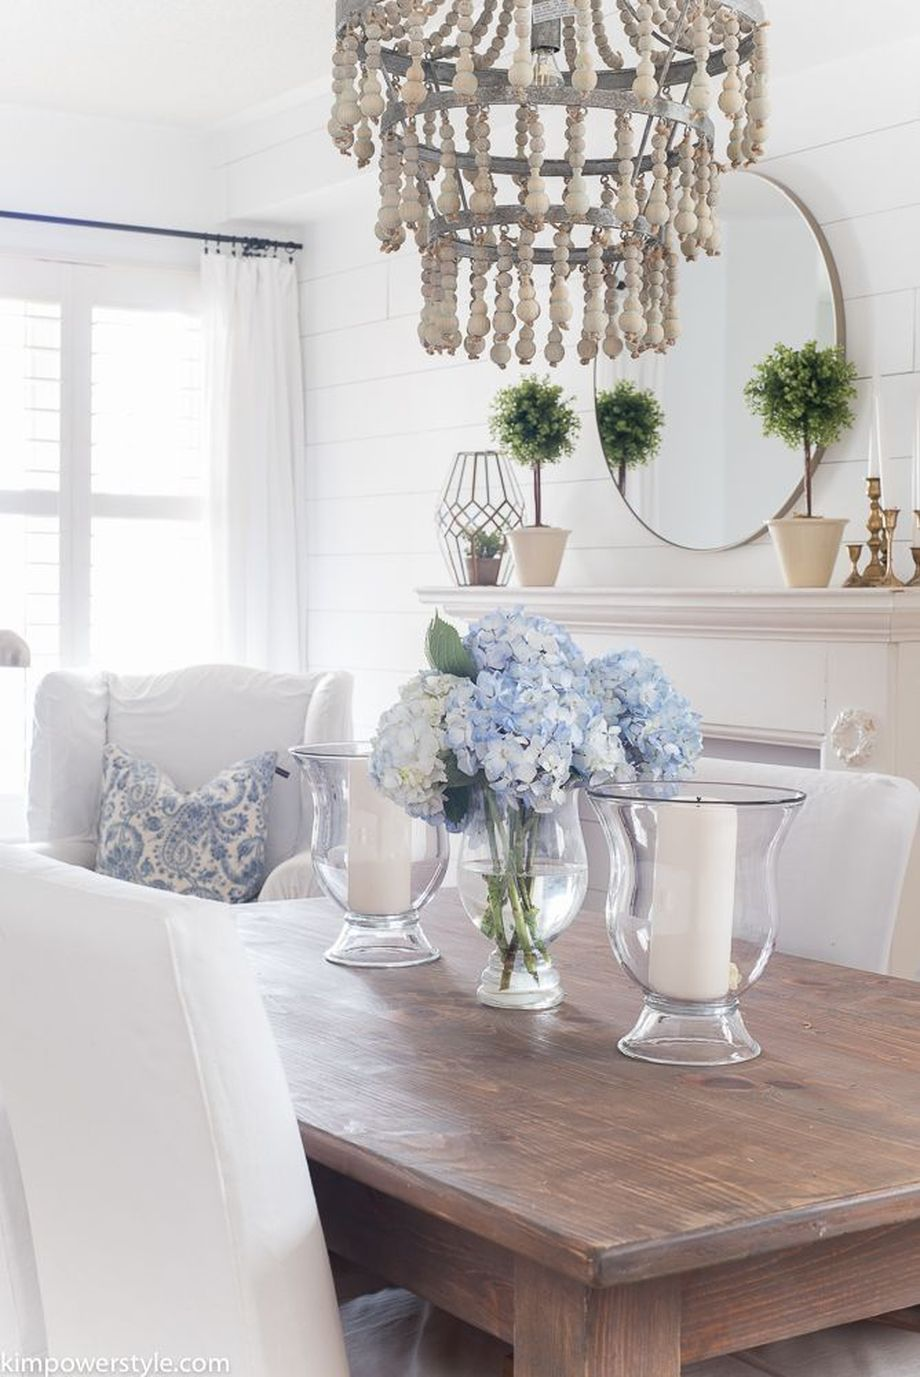 Wonderful Spring Home Decor for Table and Centre Pieces | Centre pieces